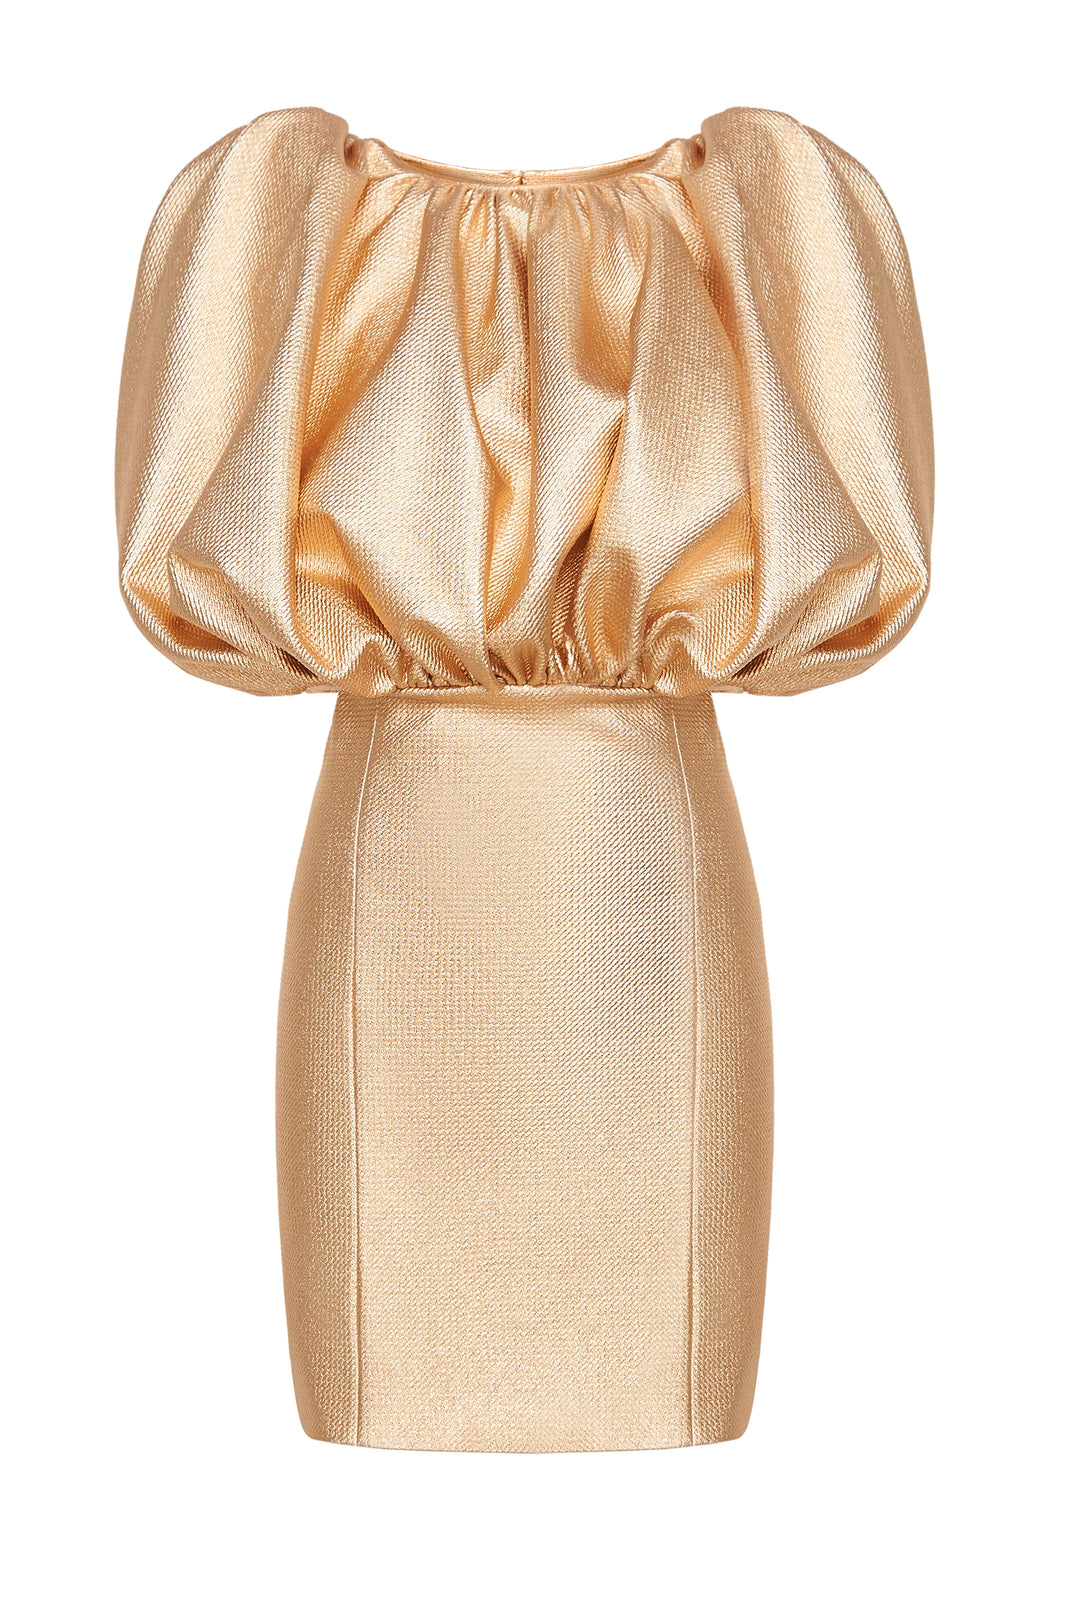 Sleevless Puff Puff Top Gold Dress